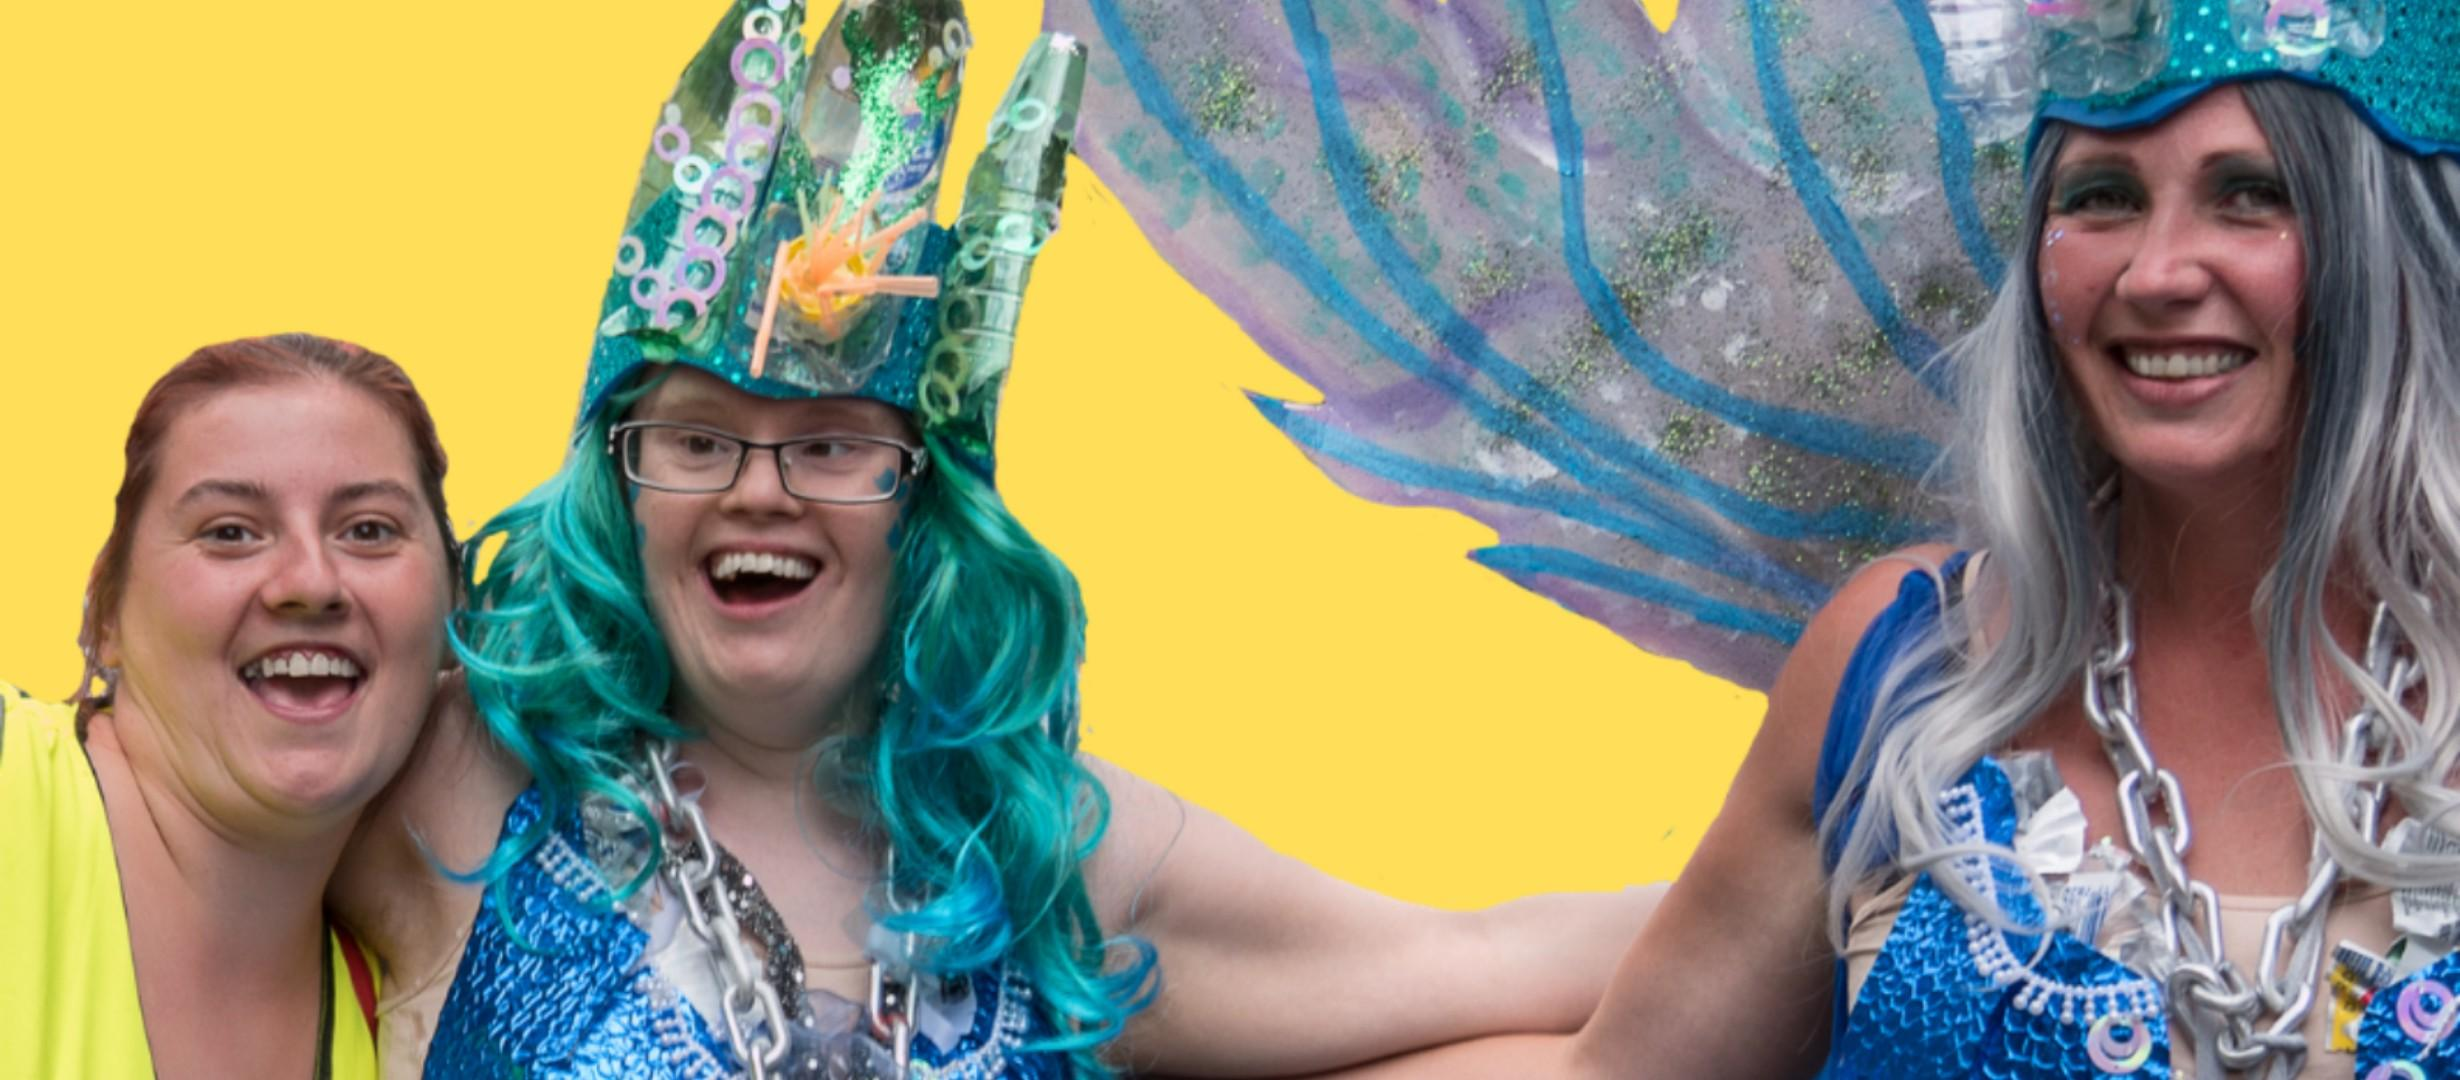 Two individuals smiling at the camera. Two are dressed in blue carnival outfits including crowns and a wing structure. The middle individual has blue curly long hair. The third person is smiling at the camera wearing a yellow top.